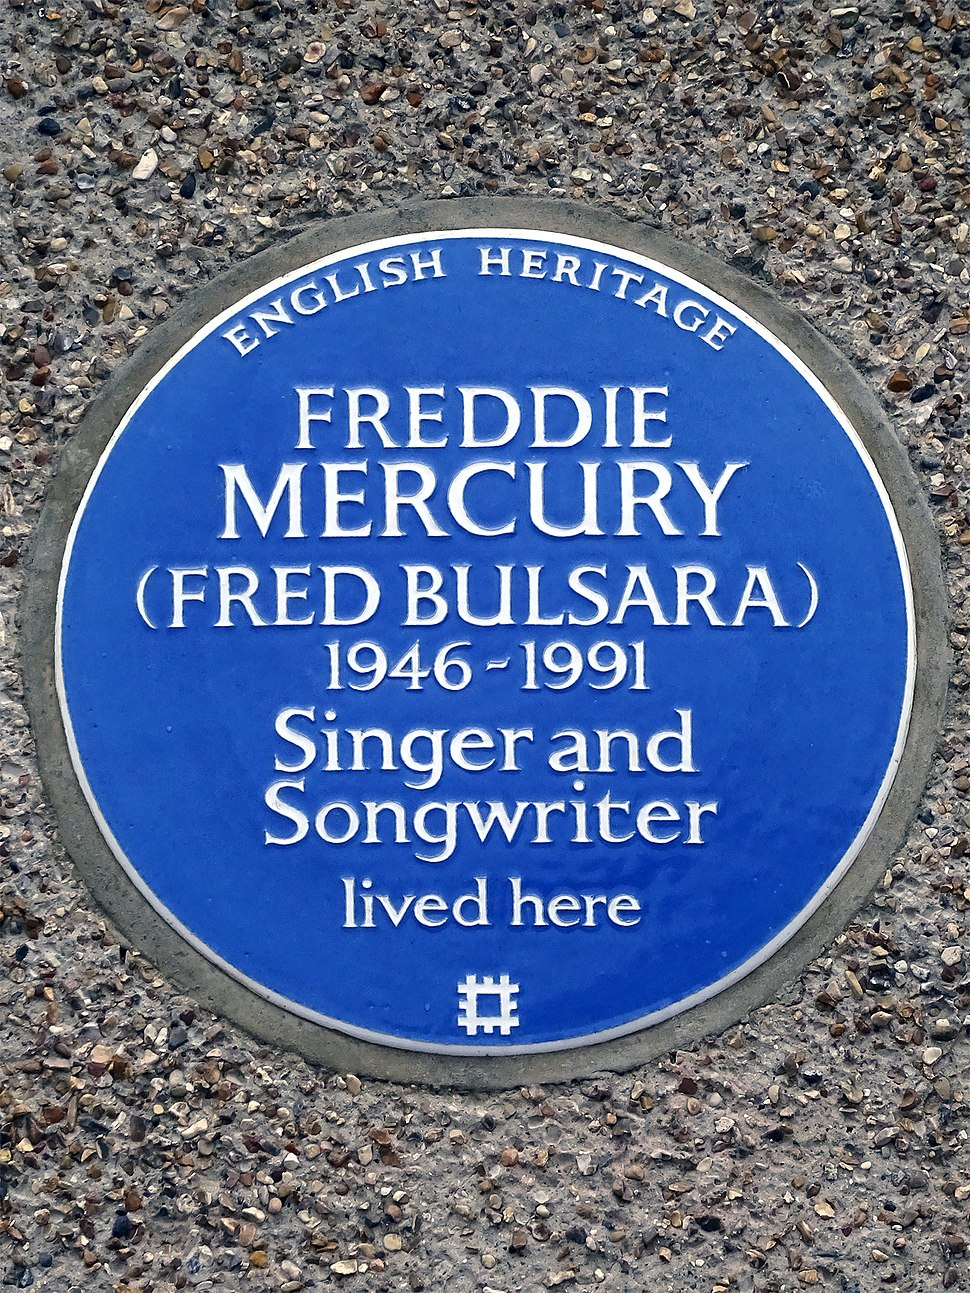 FREDDIE MERCURY (FRED BULSARA) 1946-1991 Singer and Songwriter lived here